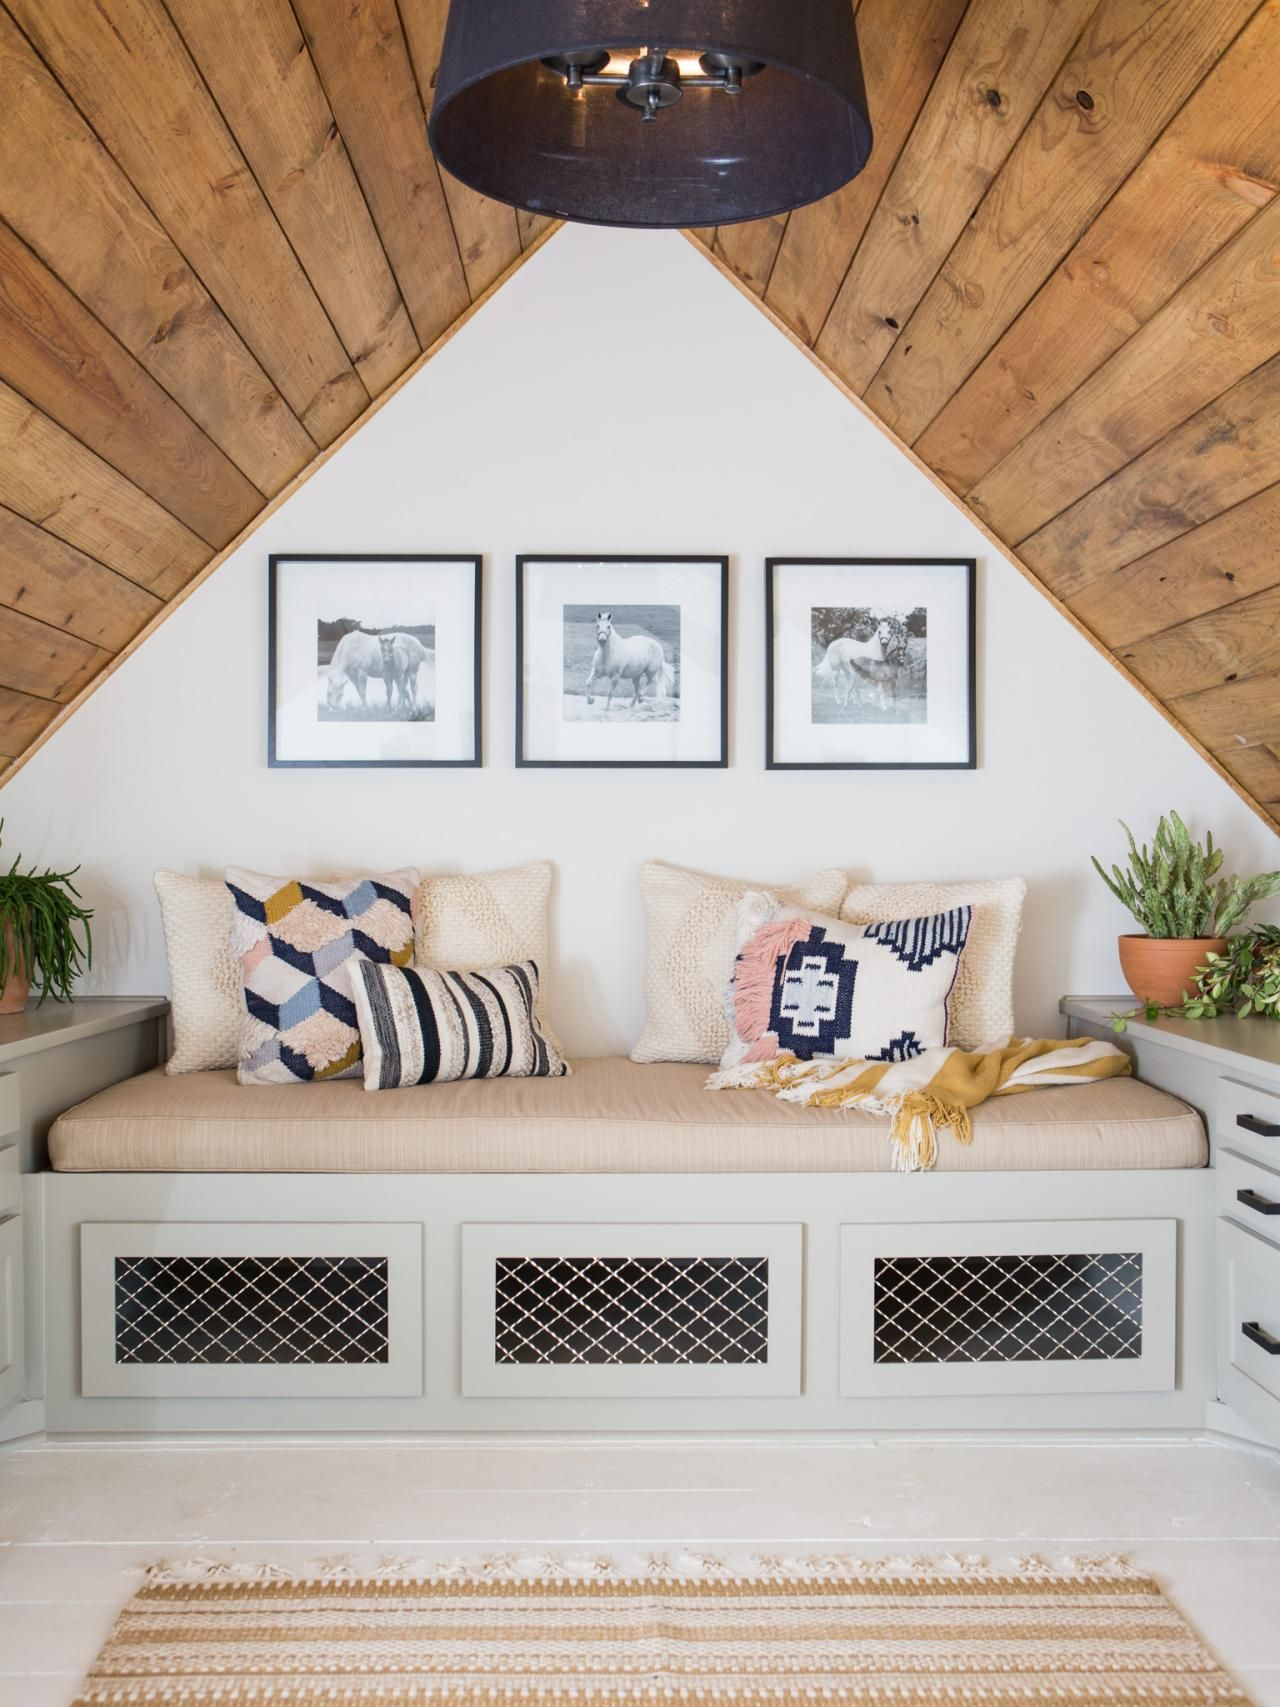 Photos Hgtv S Fixer Upper With Chip And Joanna Gaines Hgtv Attic Bedroom Ideas Angled Ceilings Remodel Bedroom Attic Bedroom Small